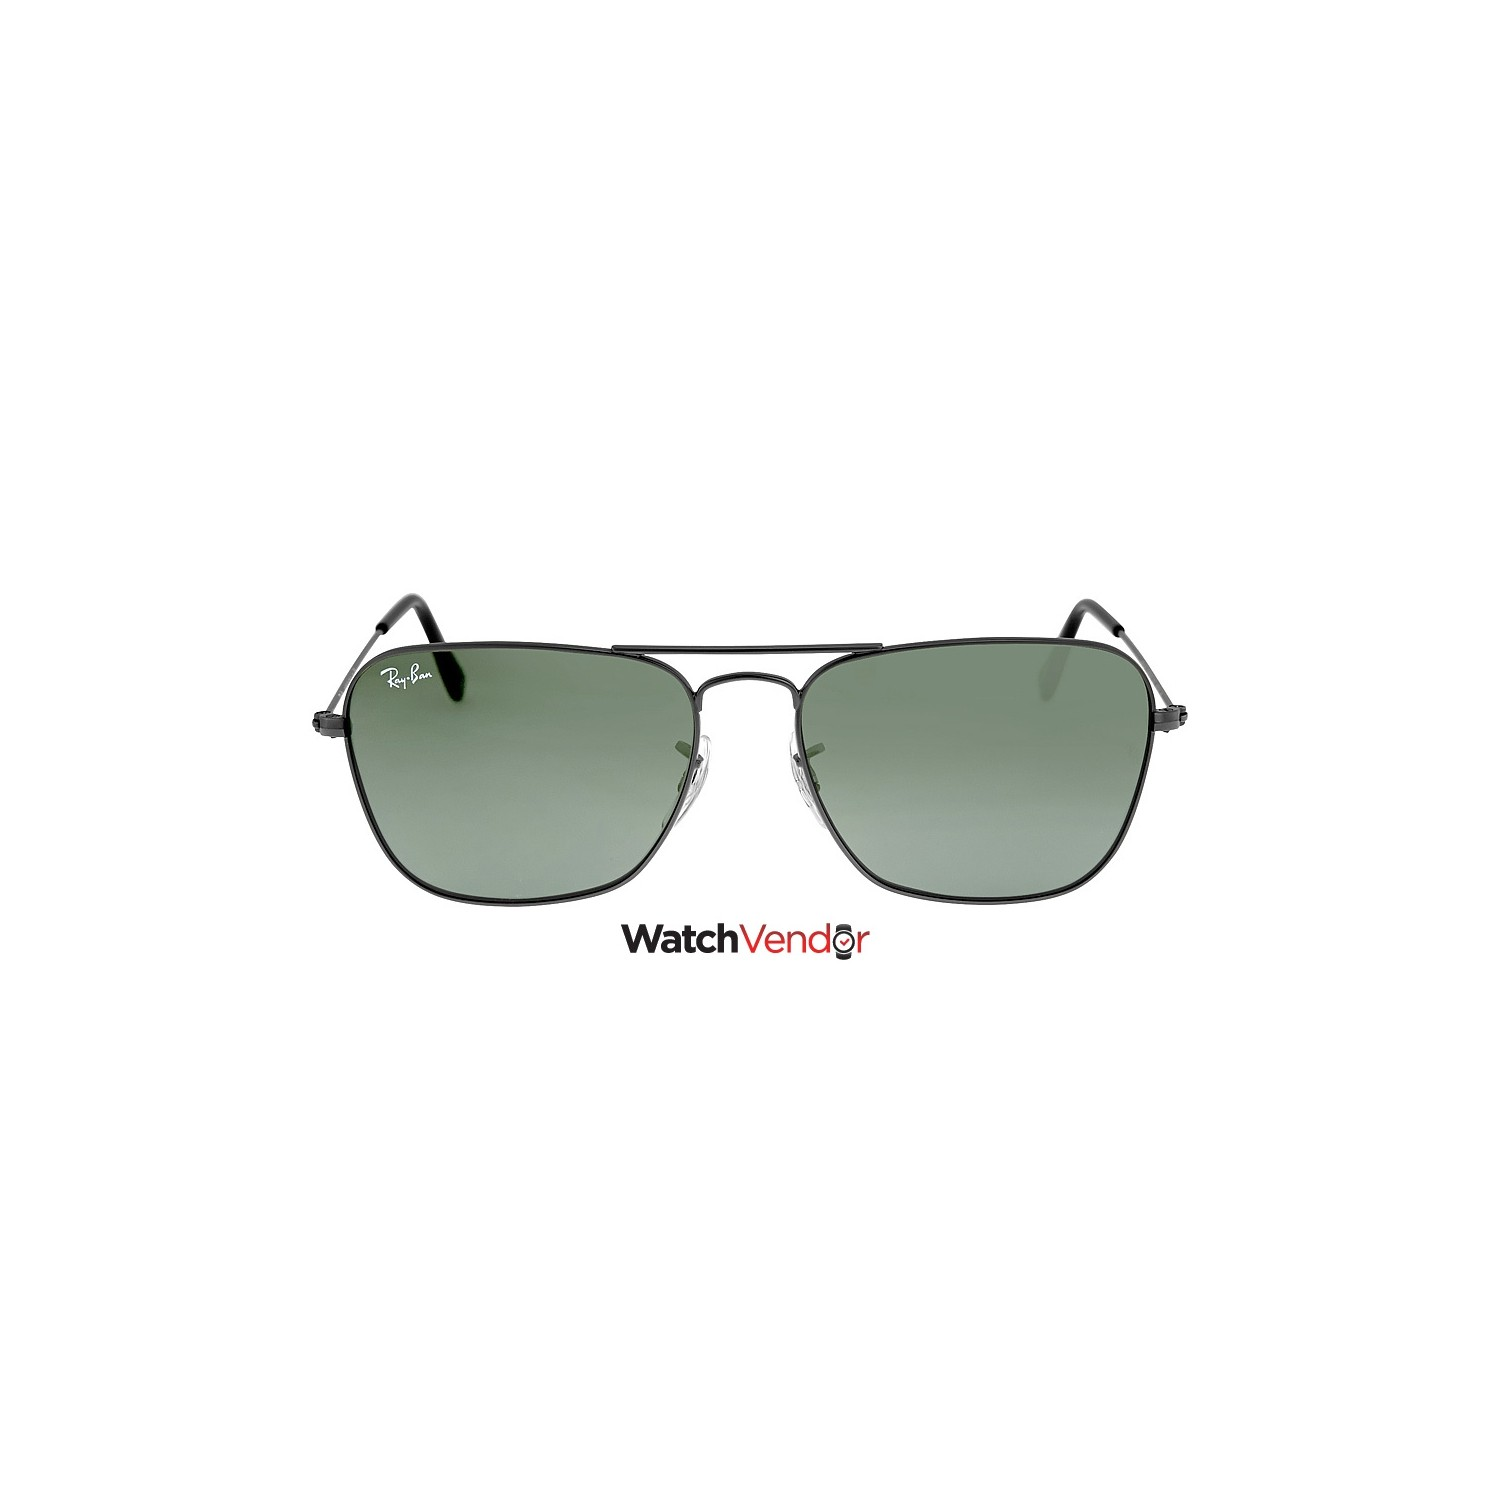 0033cc7975 Ray-Ban Caravan Green Classic G-15 Gunmetal Sunglasses RB313600455 - Online  Only